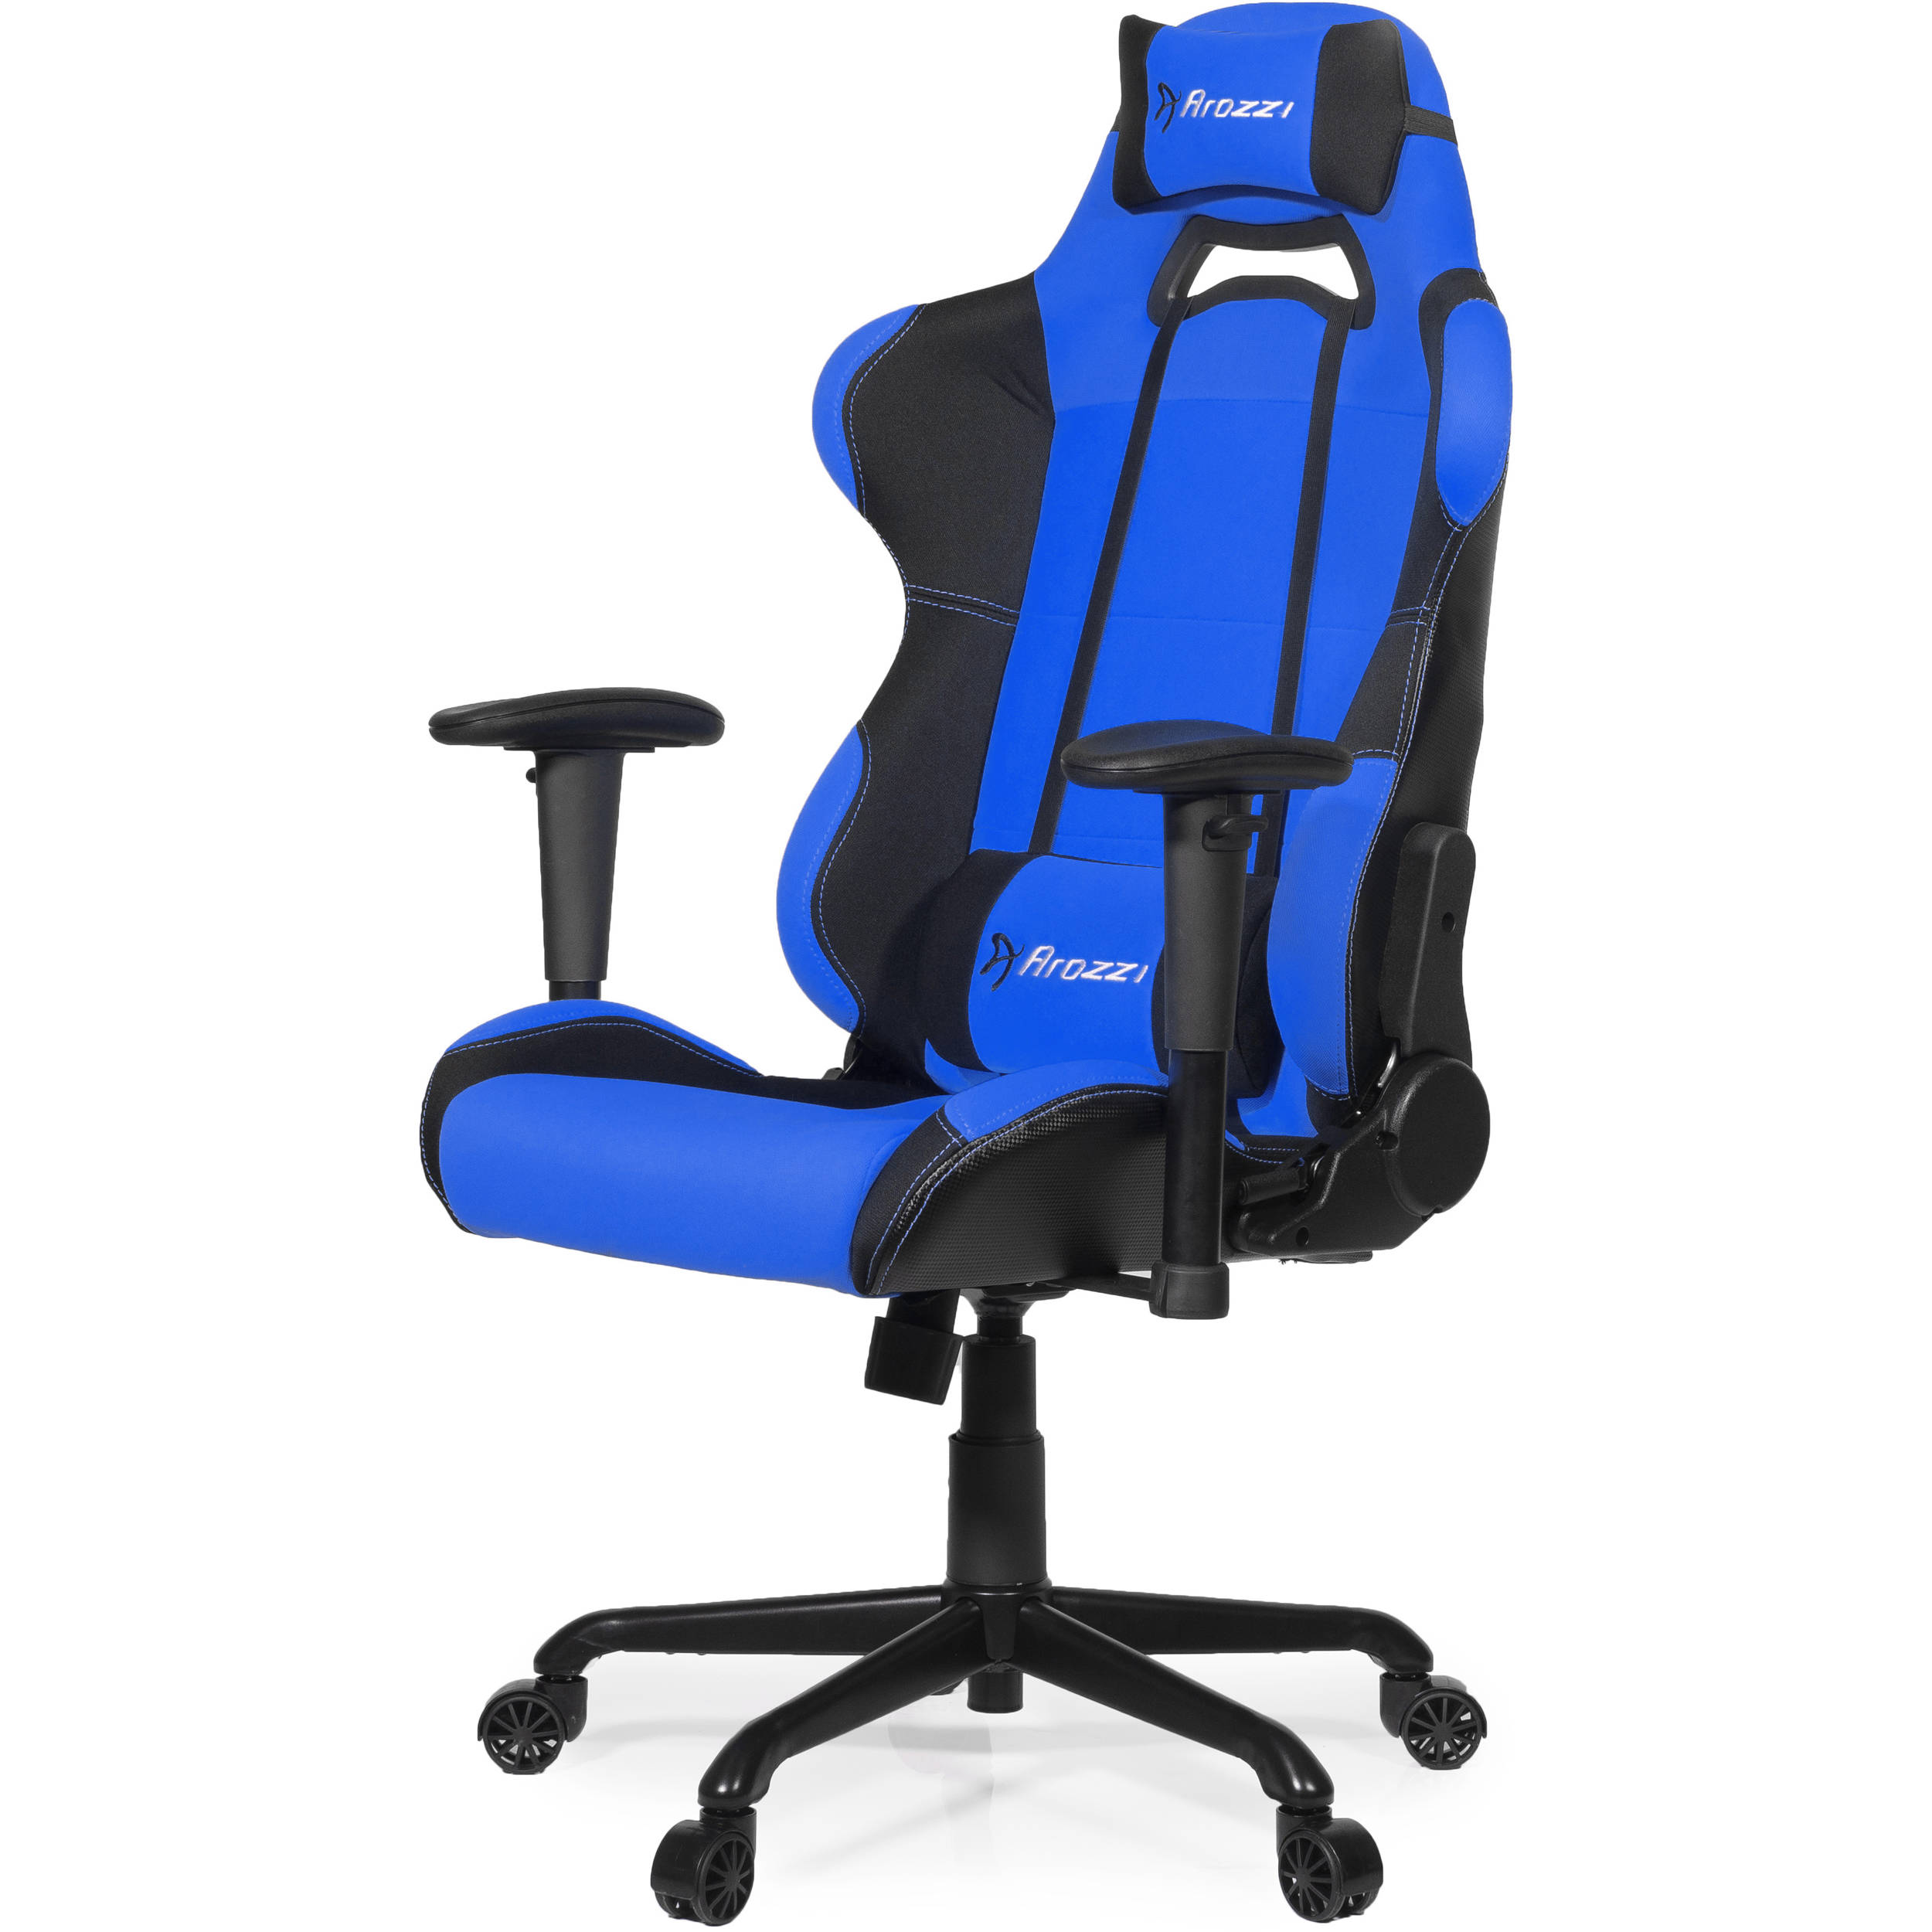 Arozzi Torretta Gaming Chair Blue TORRETTA BL B&H Video